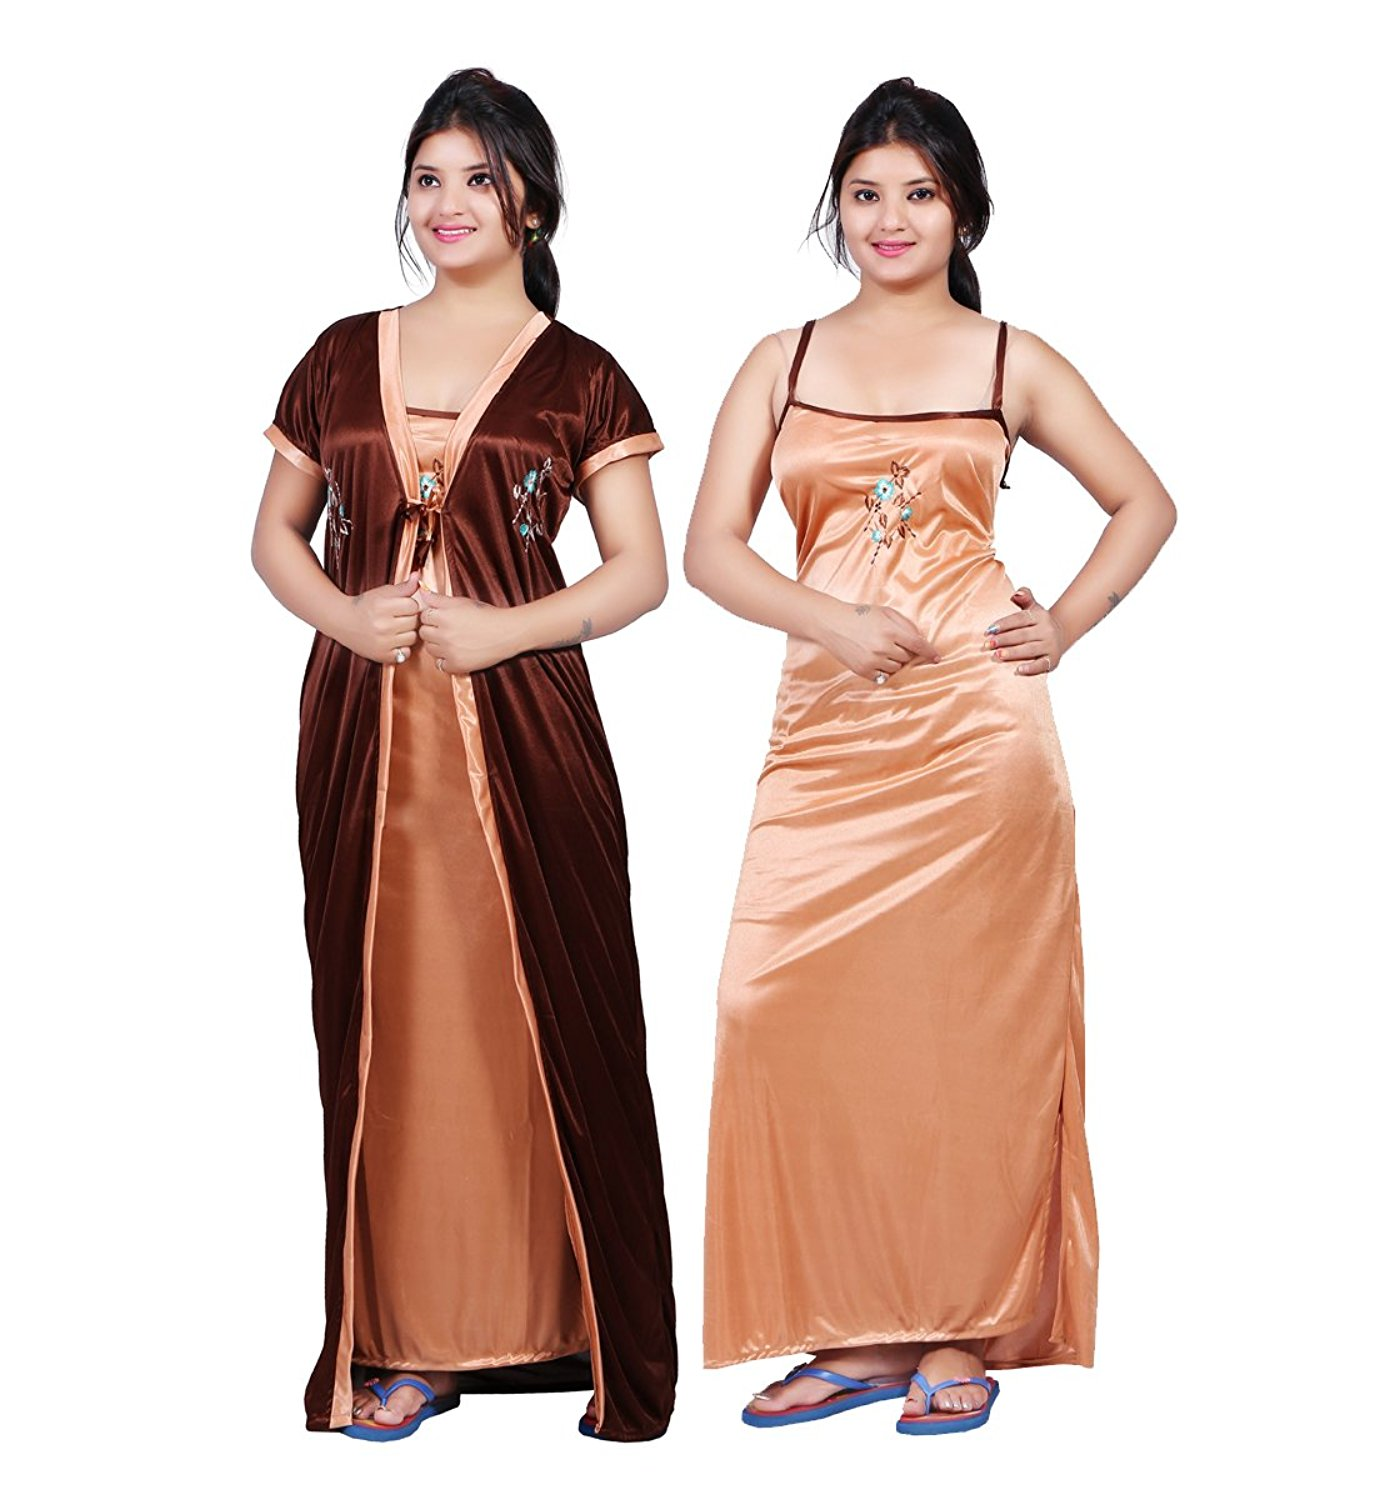 bailey womenu0027s satin night dress (pack of 2): amazon.in: clothing u0026  accessories vefblec